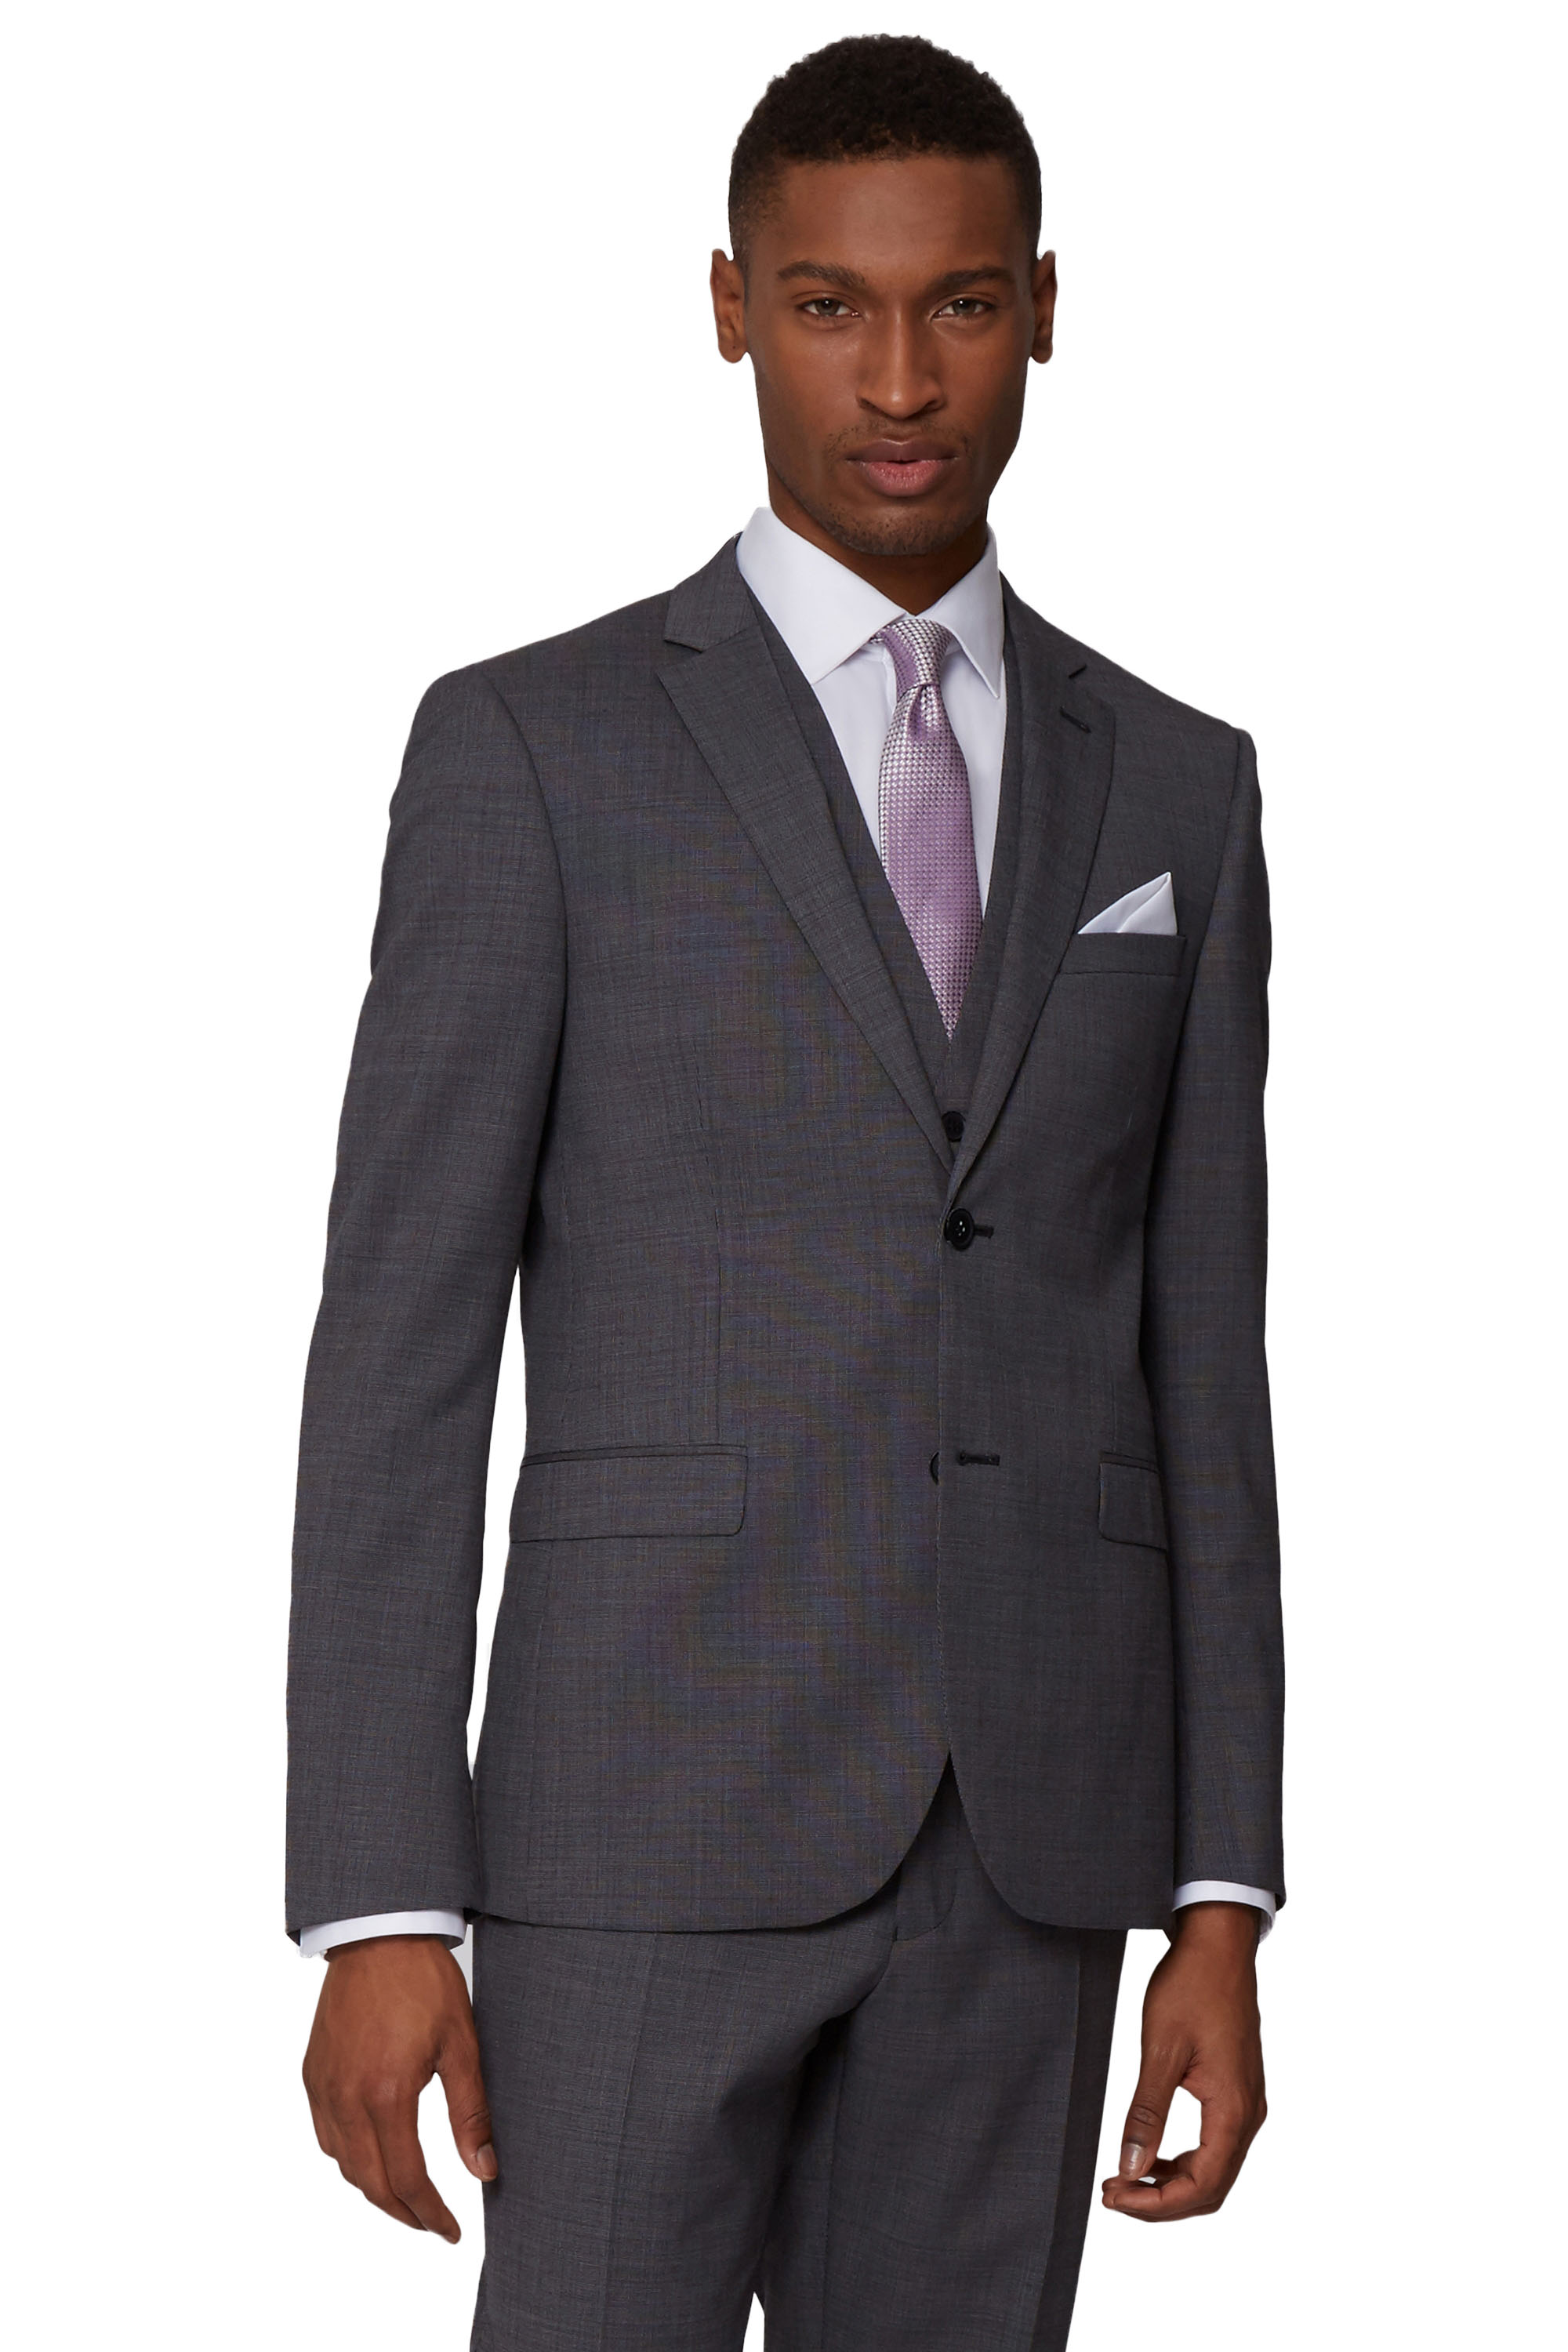 DKNY Mens Charcoal Grey Suit Jacket Slim Fit Nailhead Weave Two ...